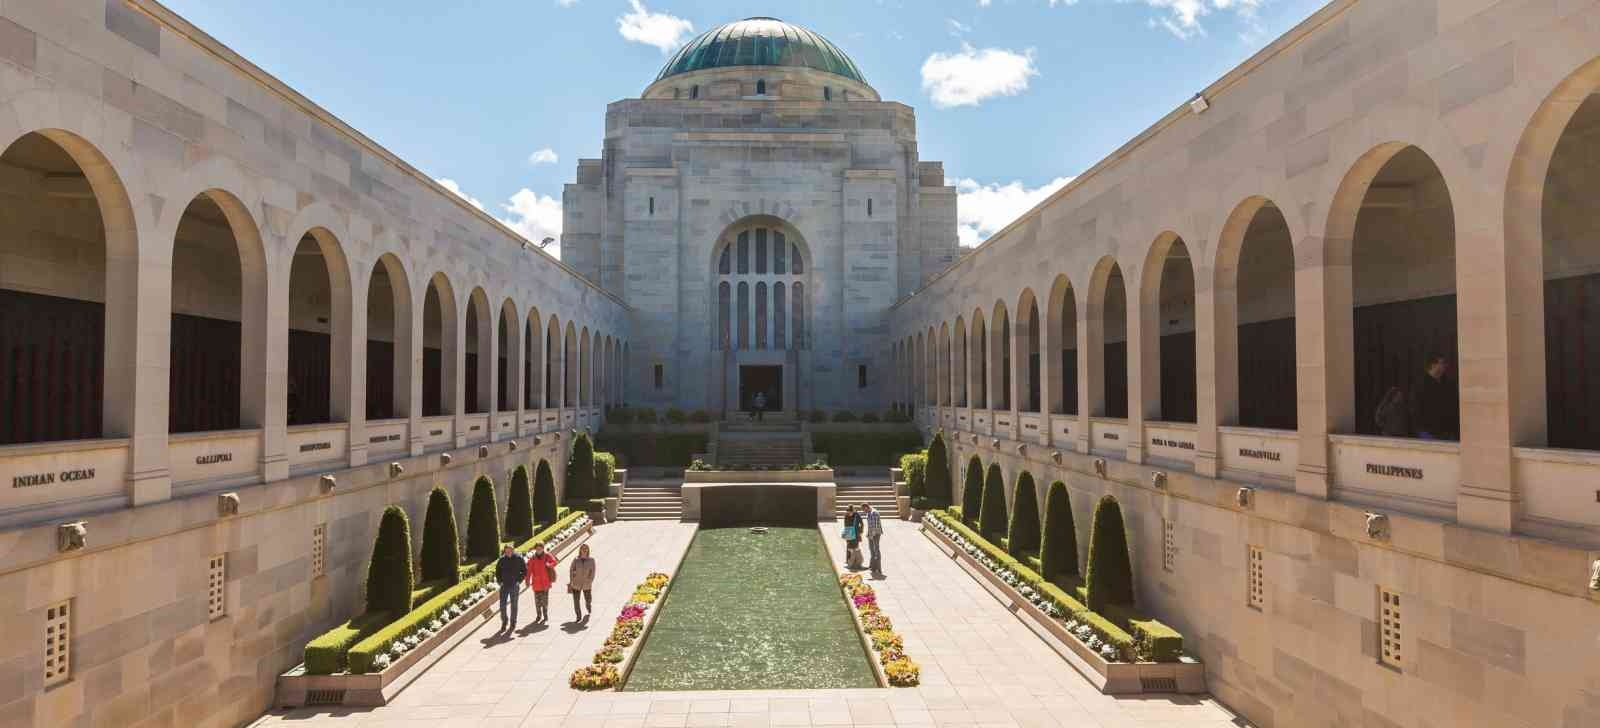 Canberra Tour from Sydney - Visit Canberra Highlights in a Day